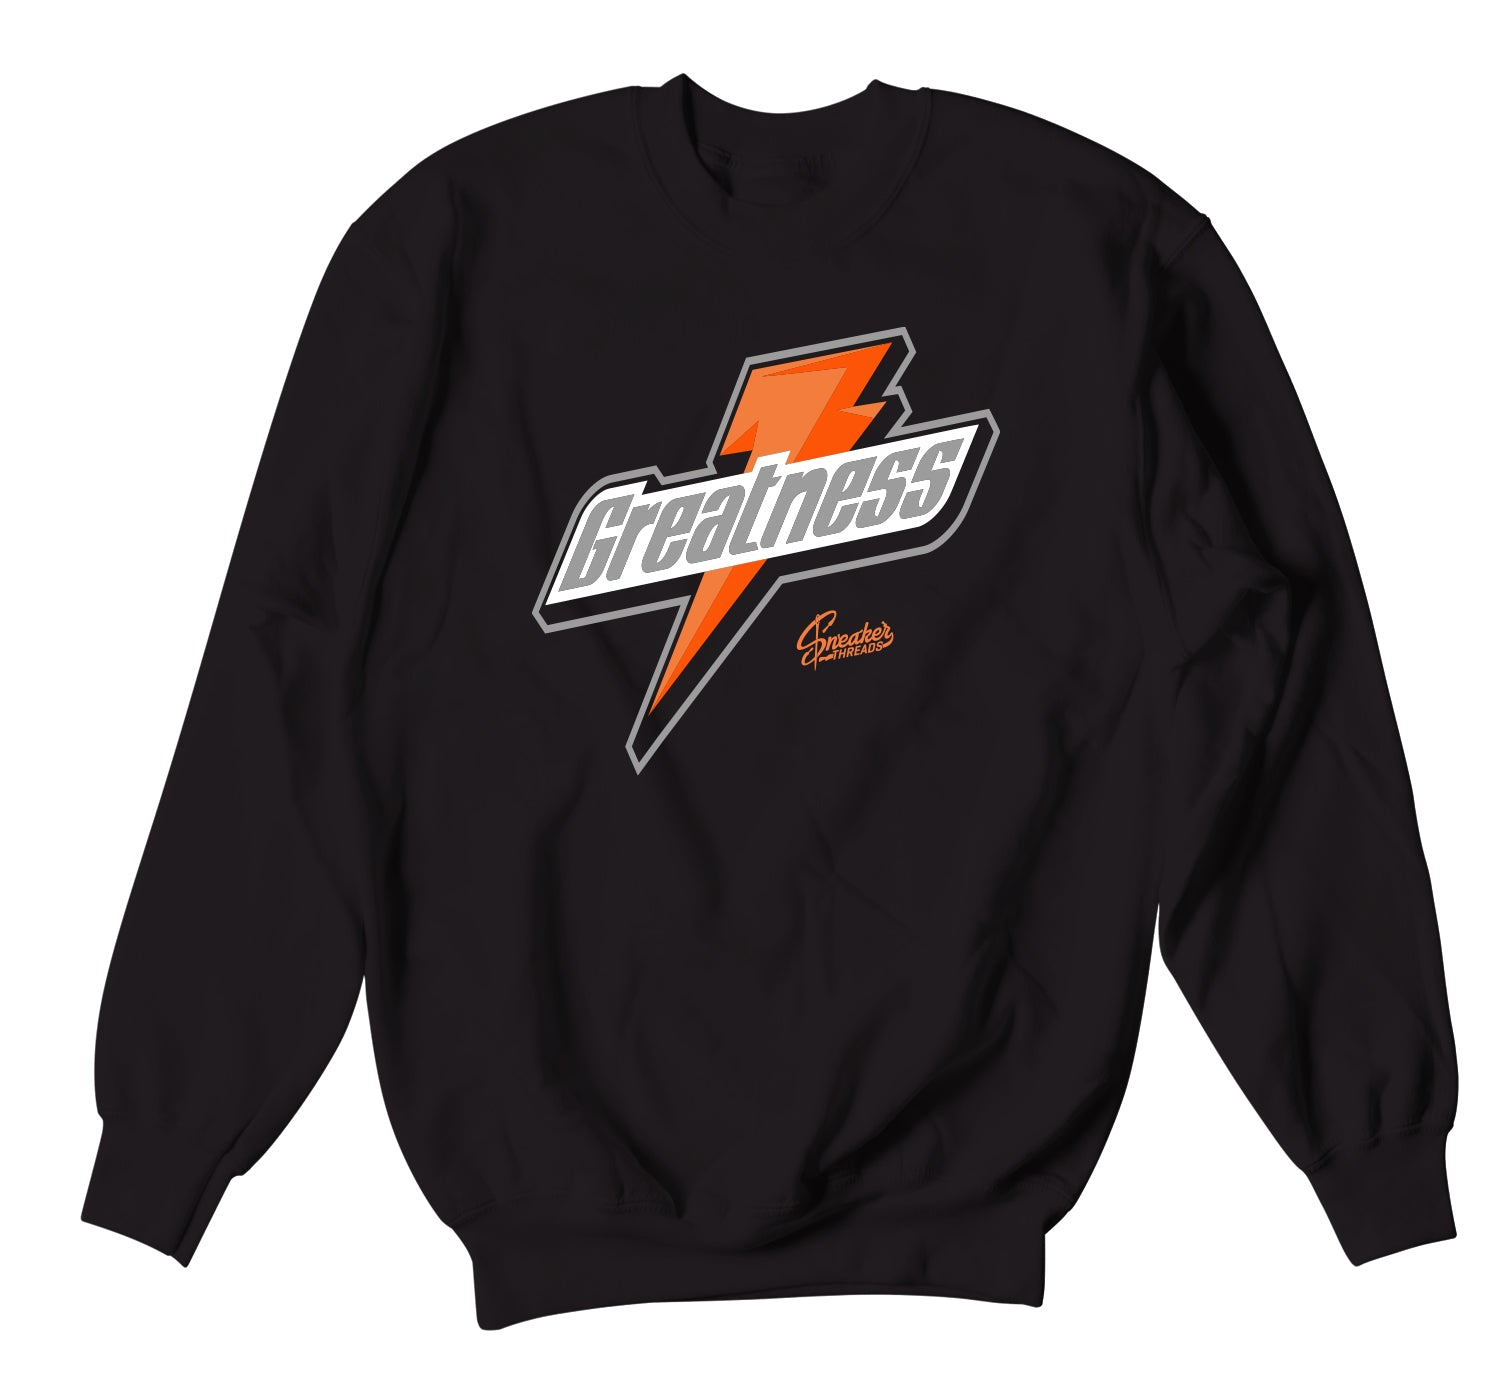 Jordan Starfish Greatness Sweater